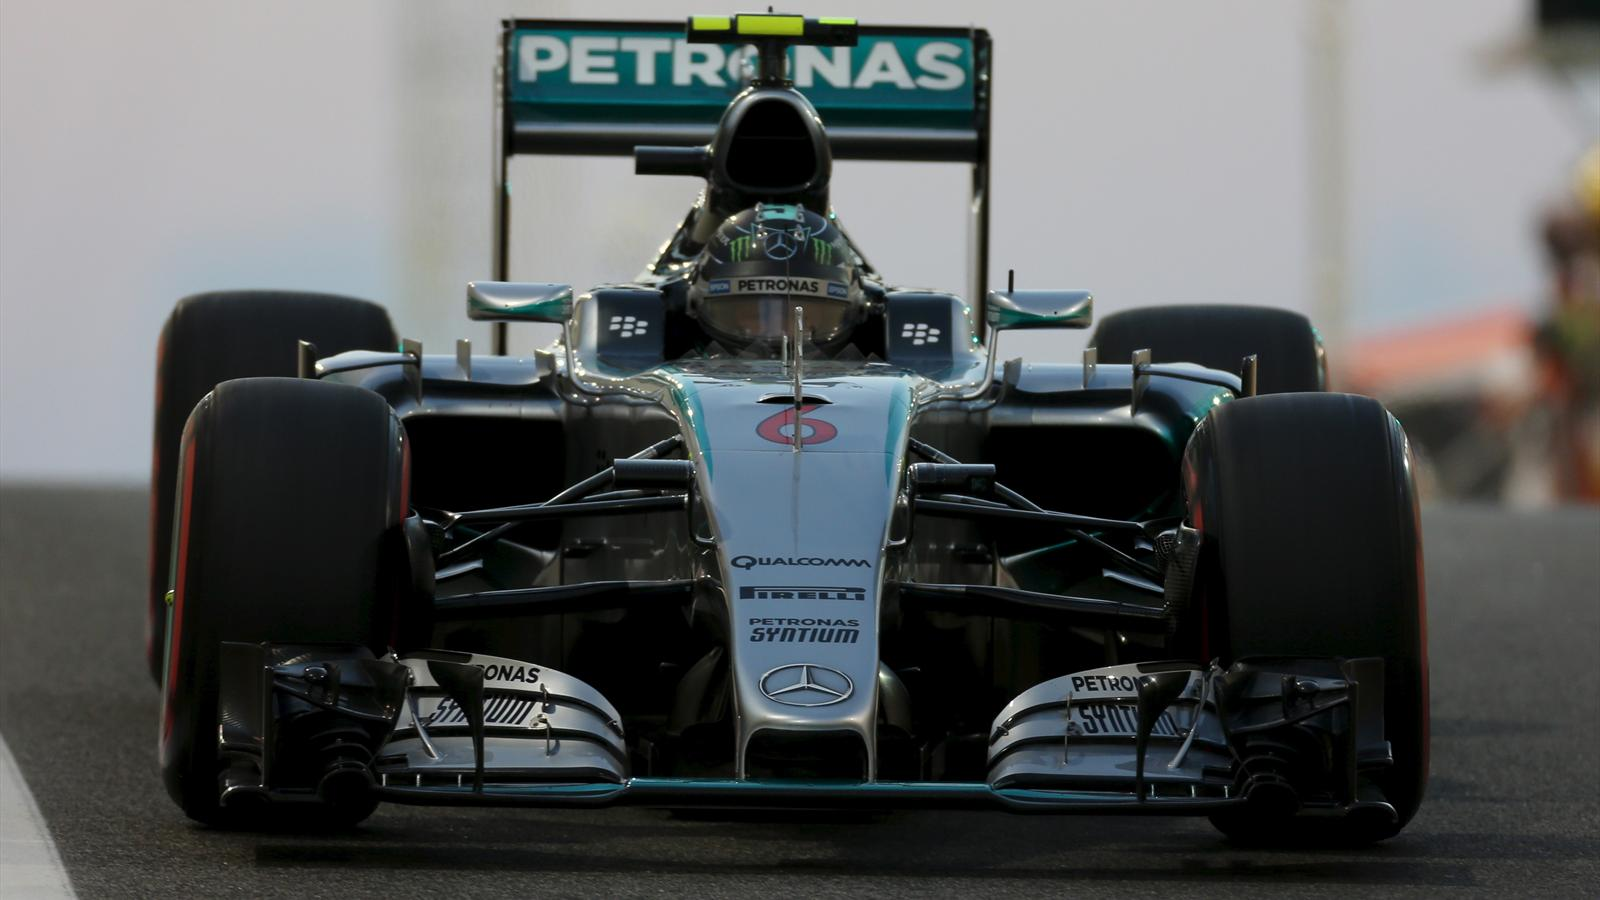 Mercedes Formula One driver Nico Rosberg of Germany leaves the pit lane during the third free practice session of Abu Dhabi F1 Grand Prix at the Yas Marina circuit